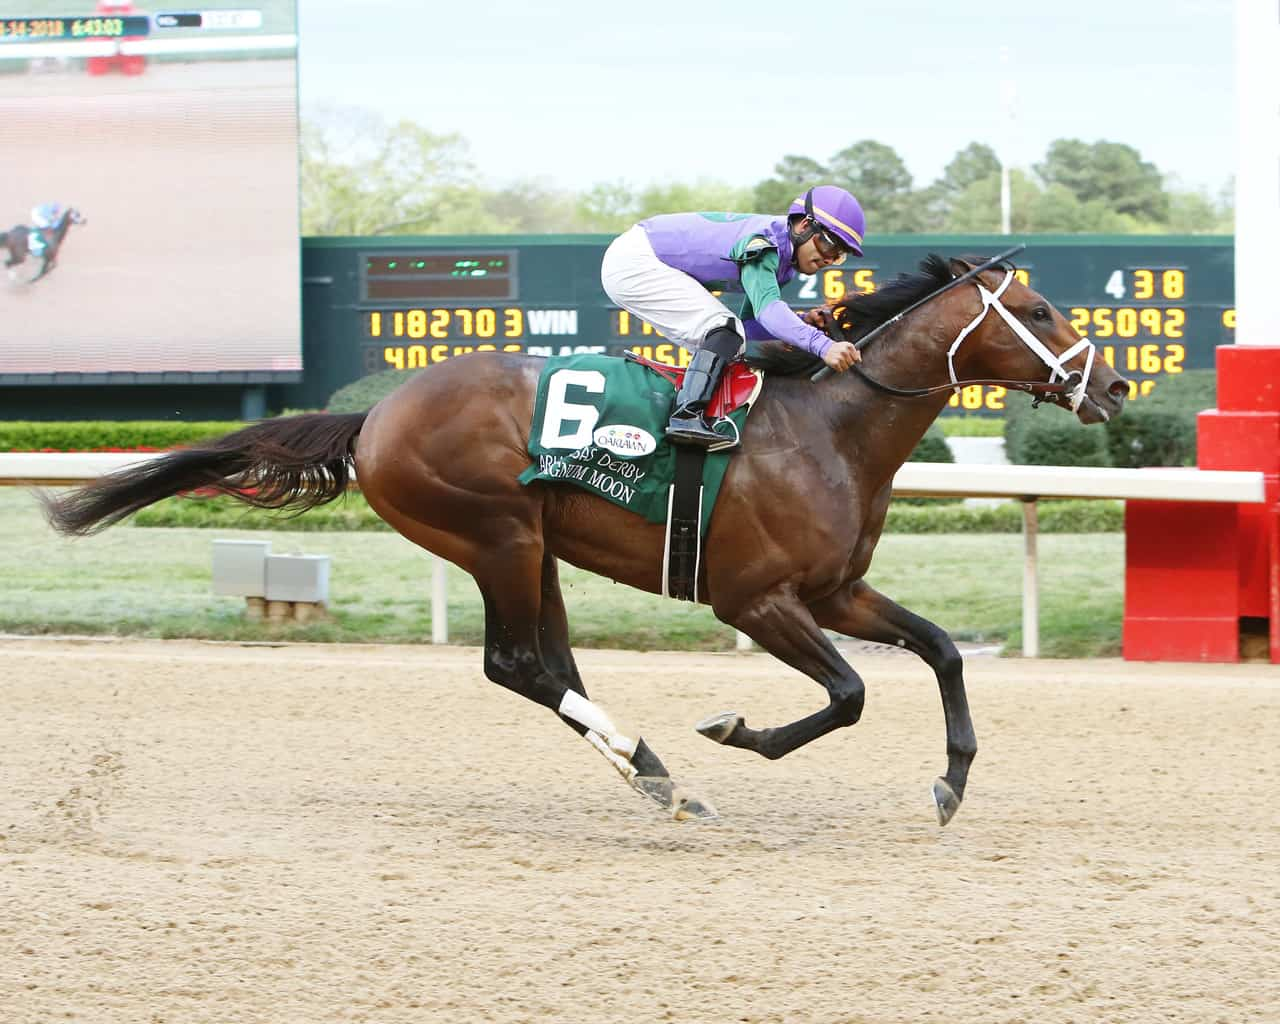 Magnum Moon cruises to victory in the Arkansas Derby